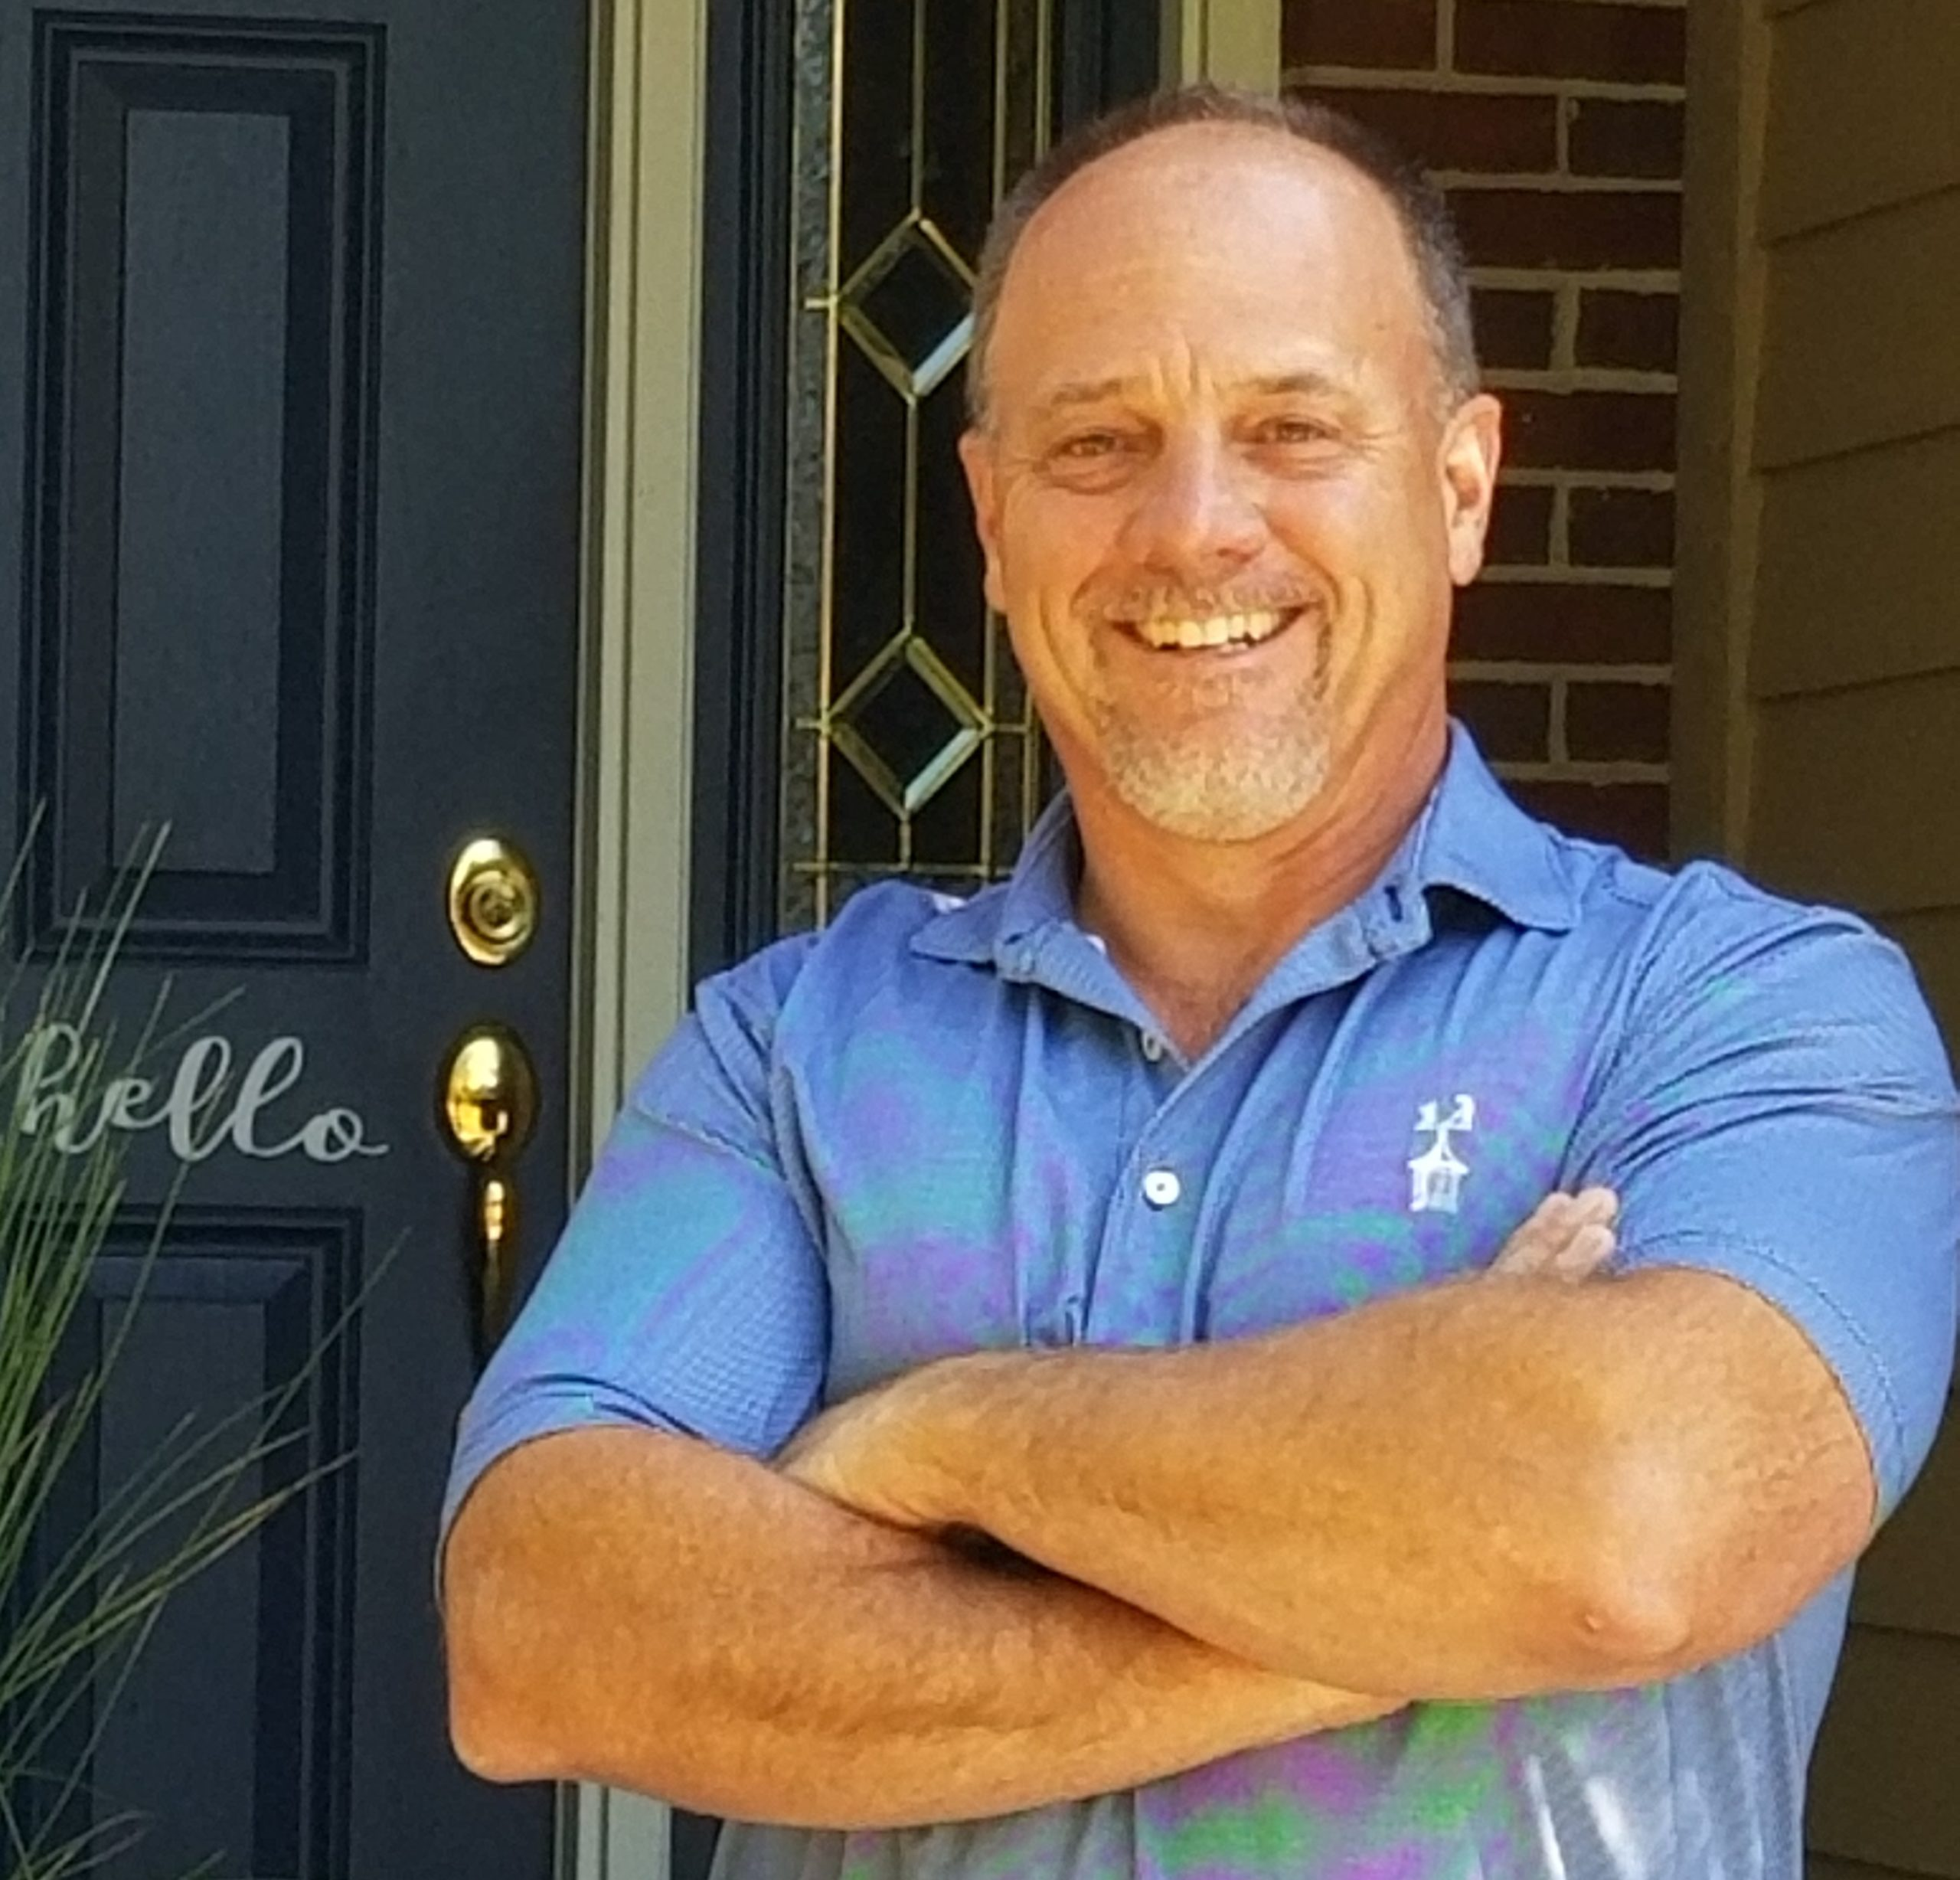 David Mollitor of Your Home Solution Experts, www.yourhomesolutionexperts.com